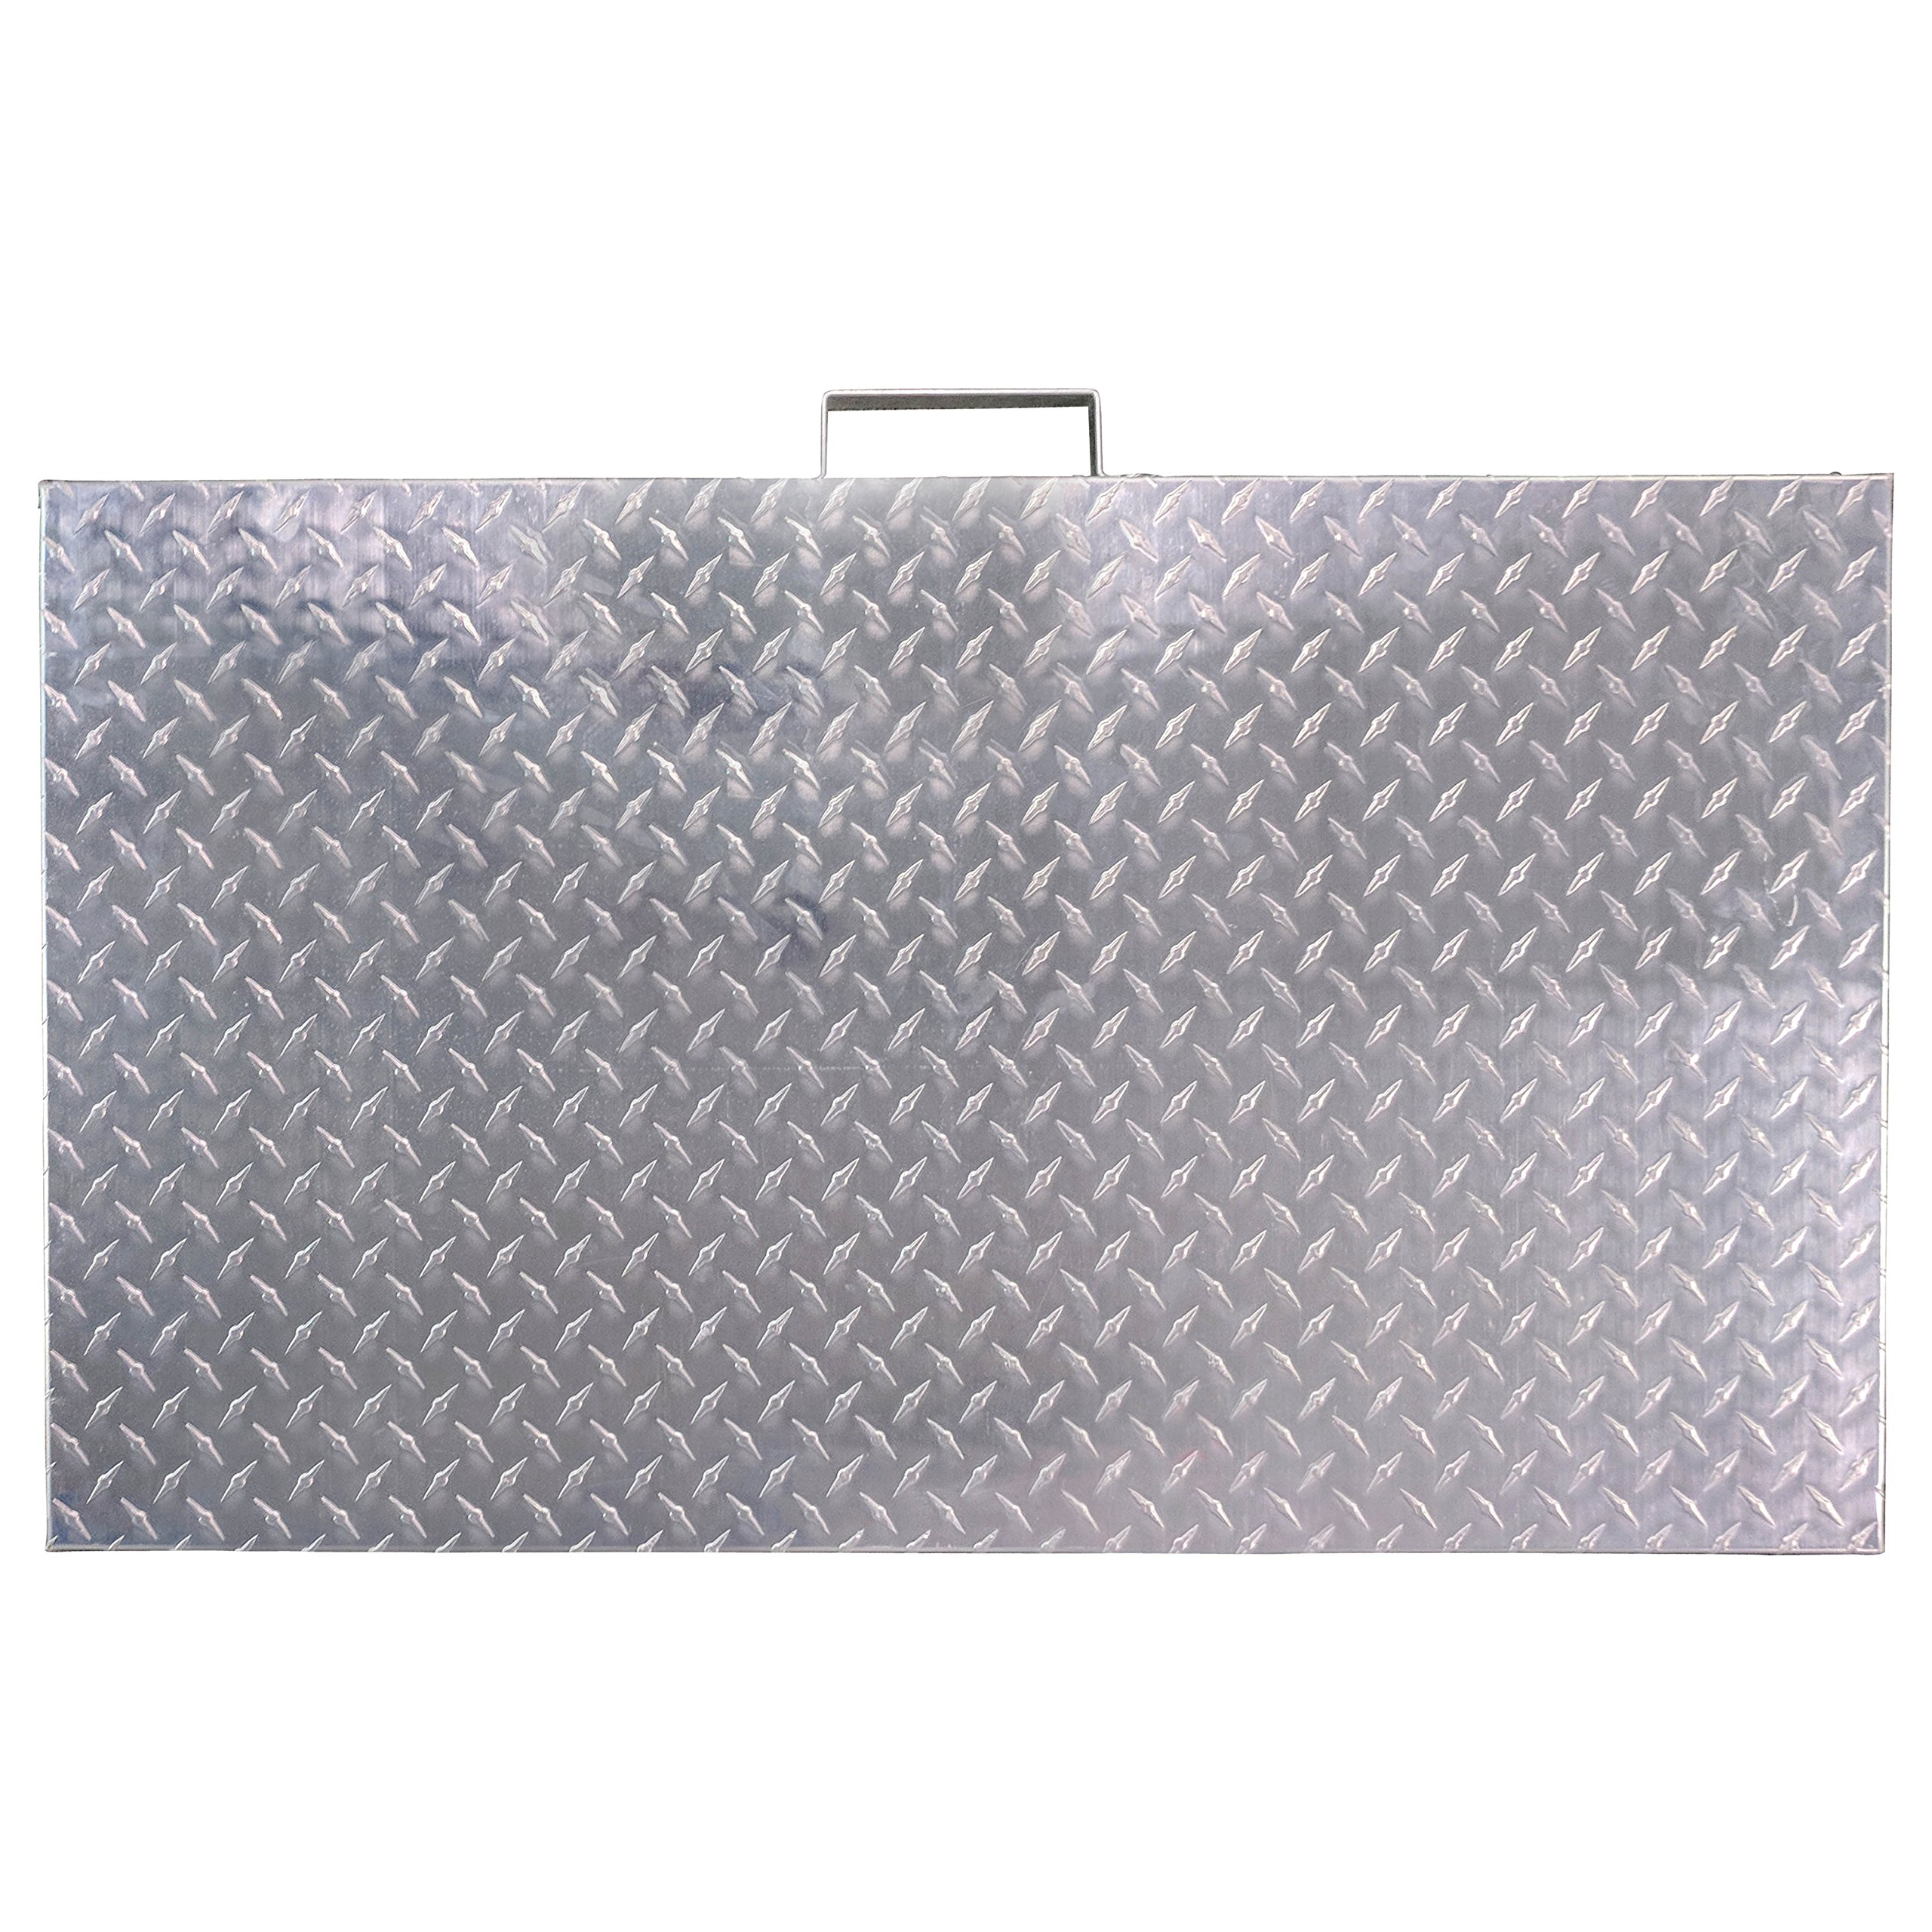 Titan Diamond Plated Aluminum Grill Cover Fits 36'' Blackstone Griddle by Titan Great Outdoors (Image #4)